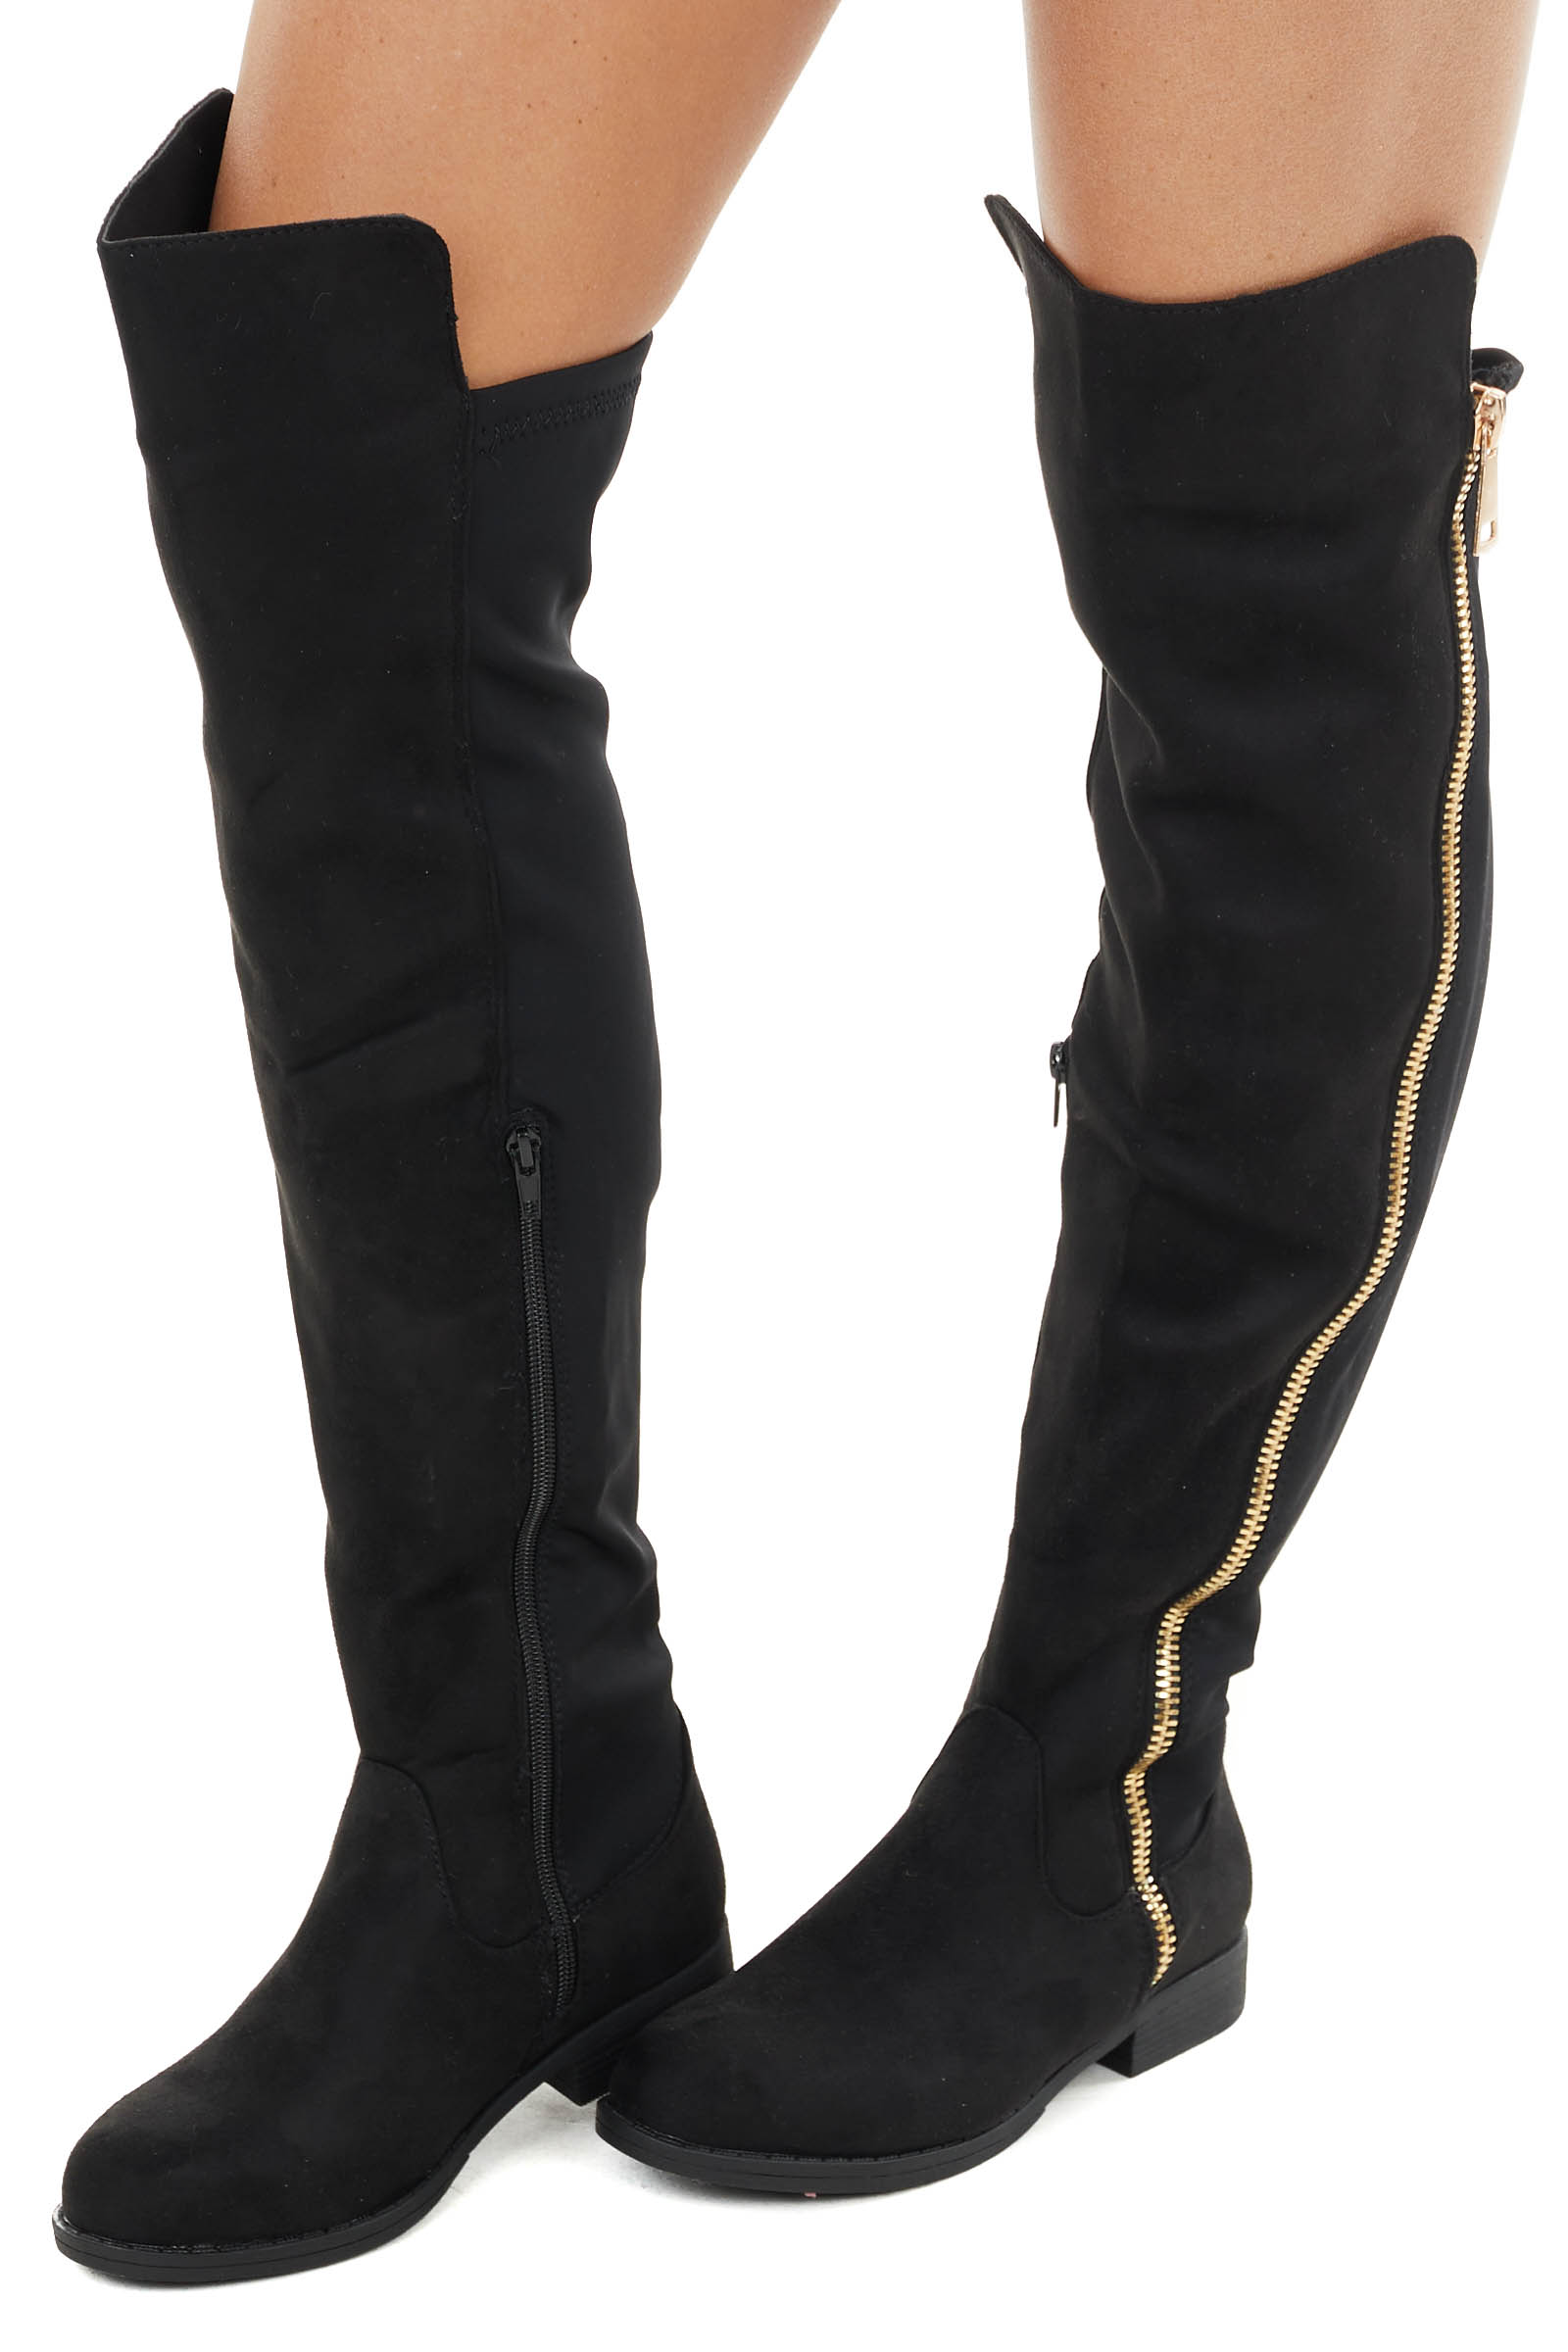 Black Faux Suede Knee High Boot with Small Heel